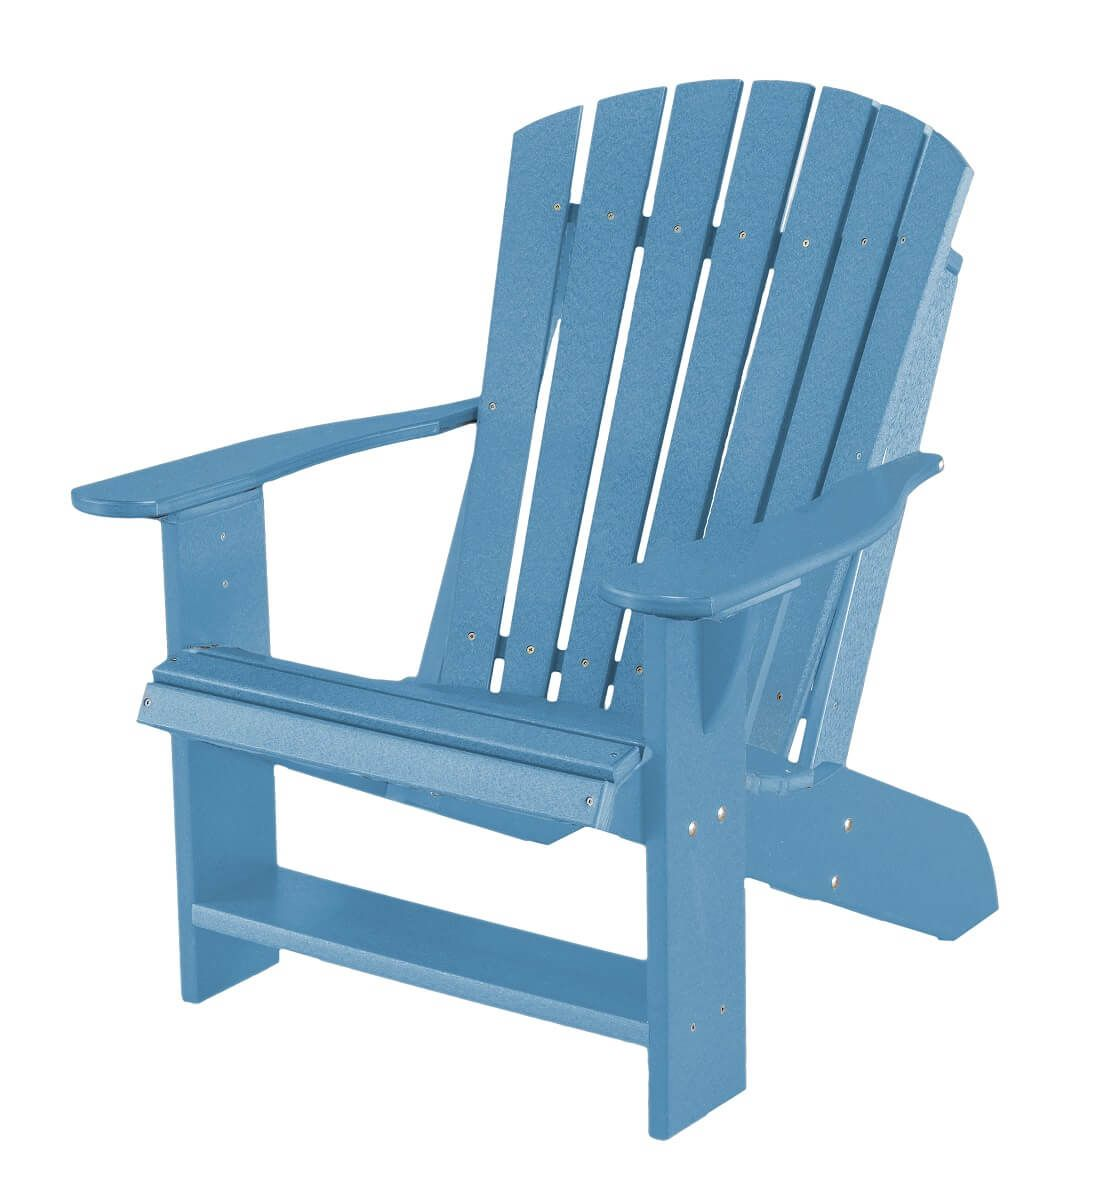 Powder Blue Sidra Adirondack Chair